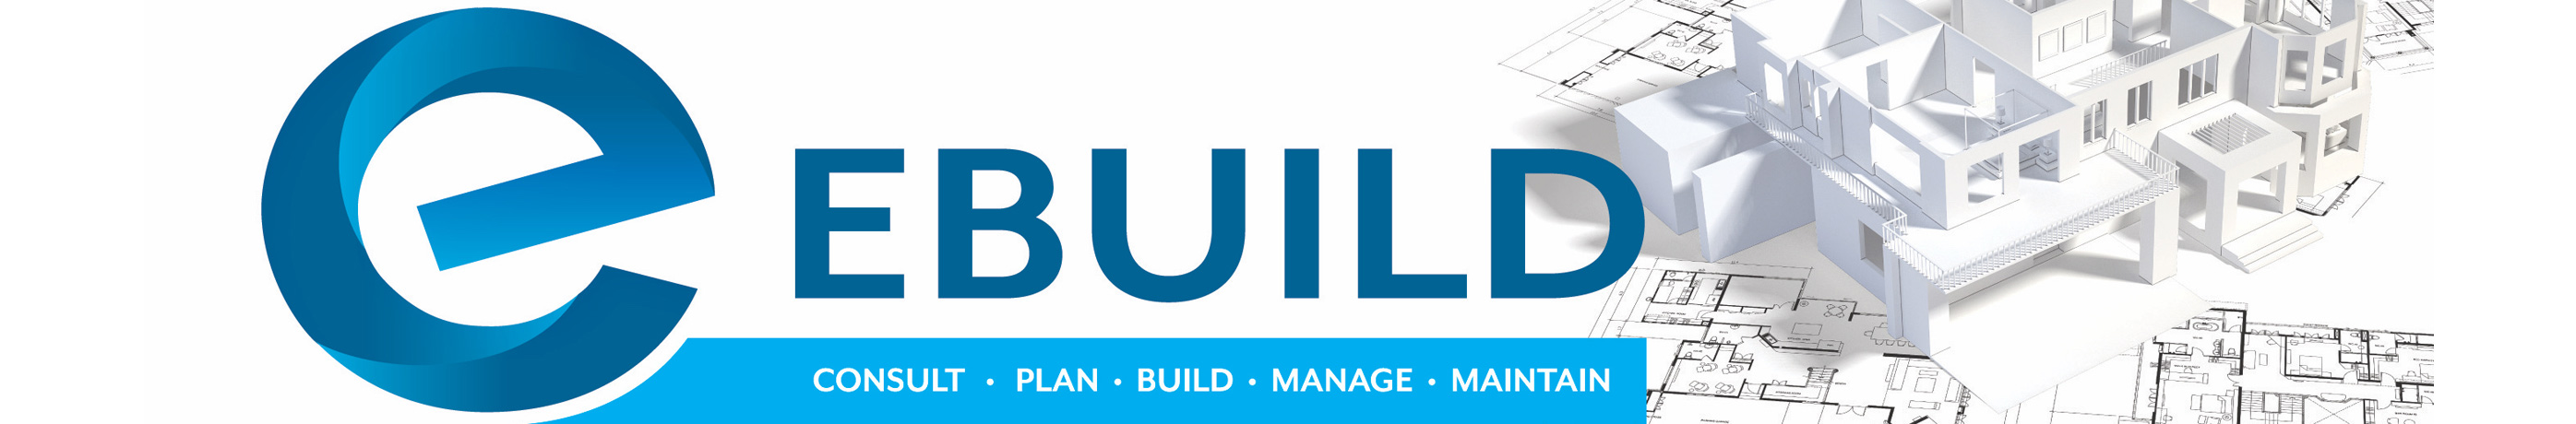 ebuild logo and banner